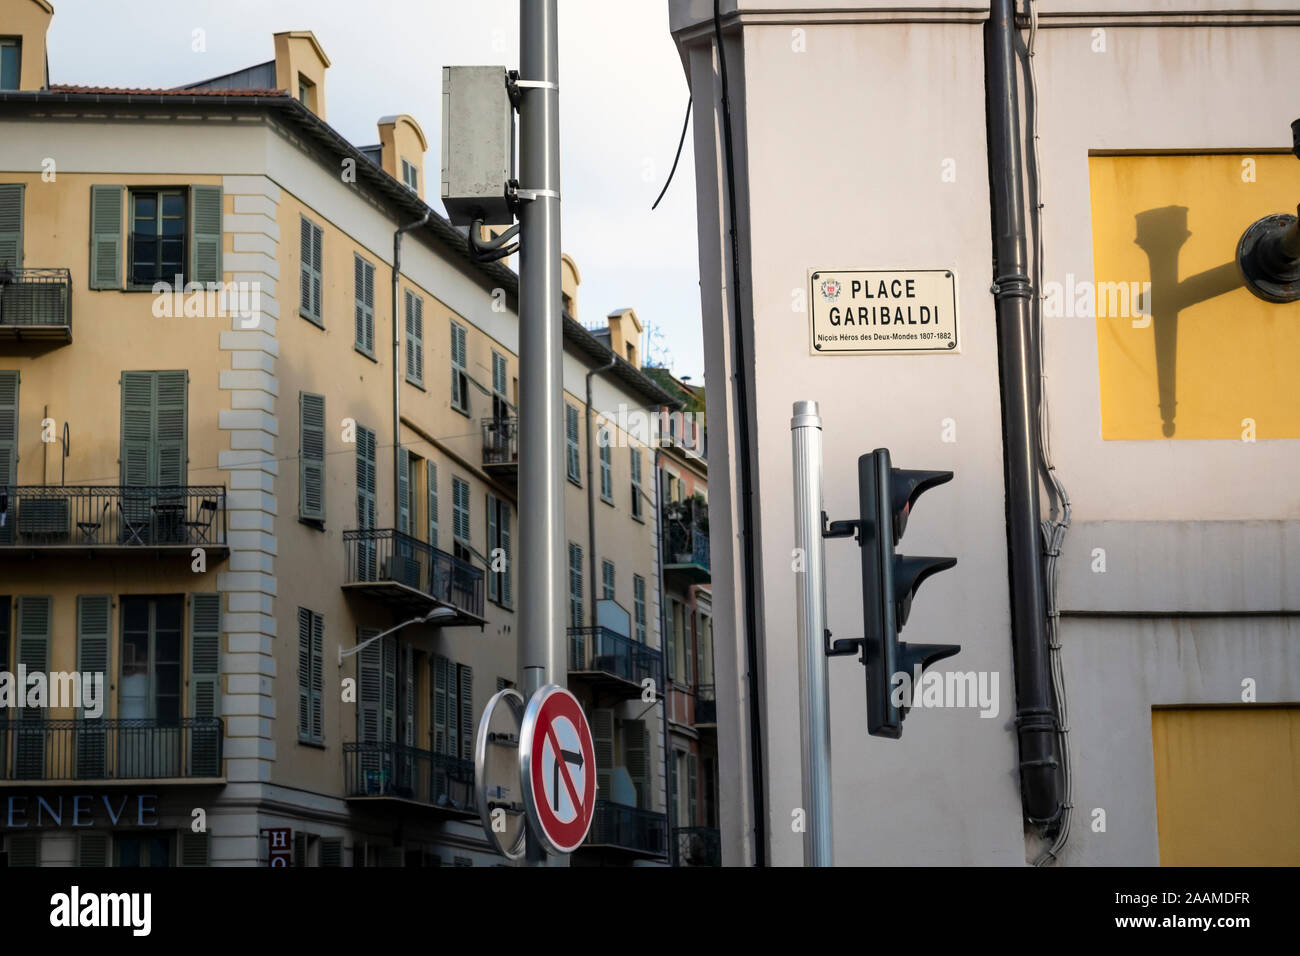 A street marker sign for the popular Place Garibaldi in the Old Town area of Nice, France. Stock Photo